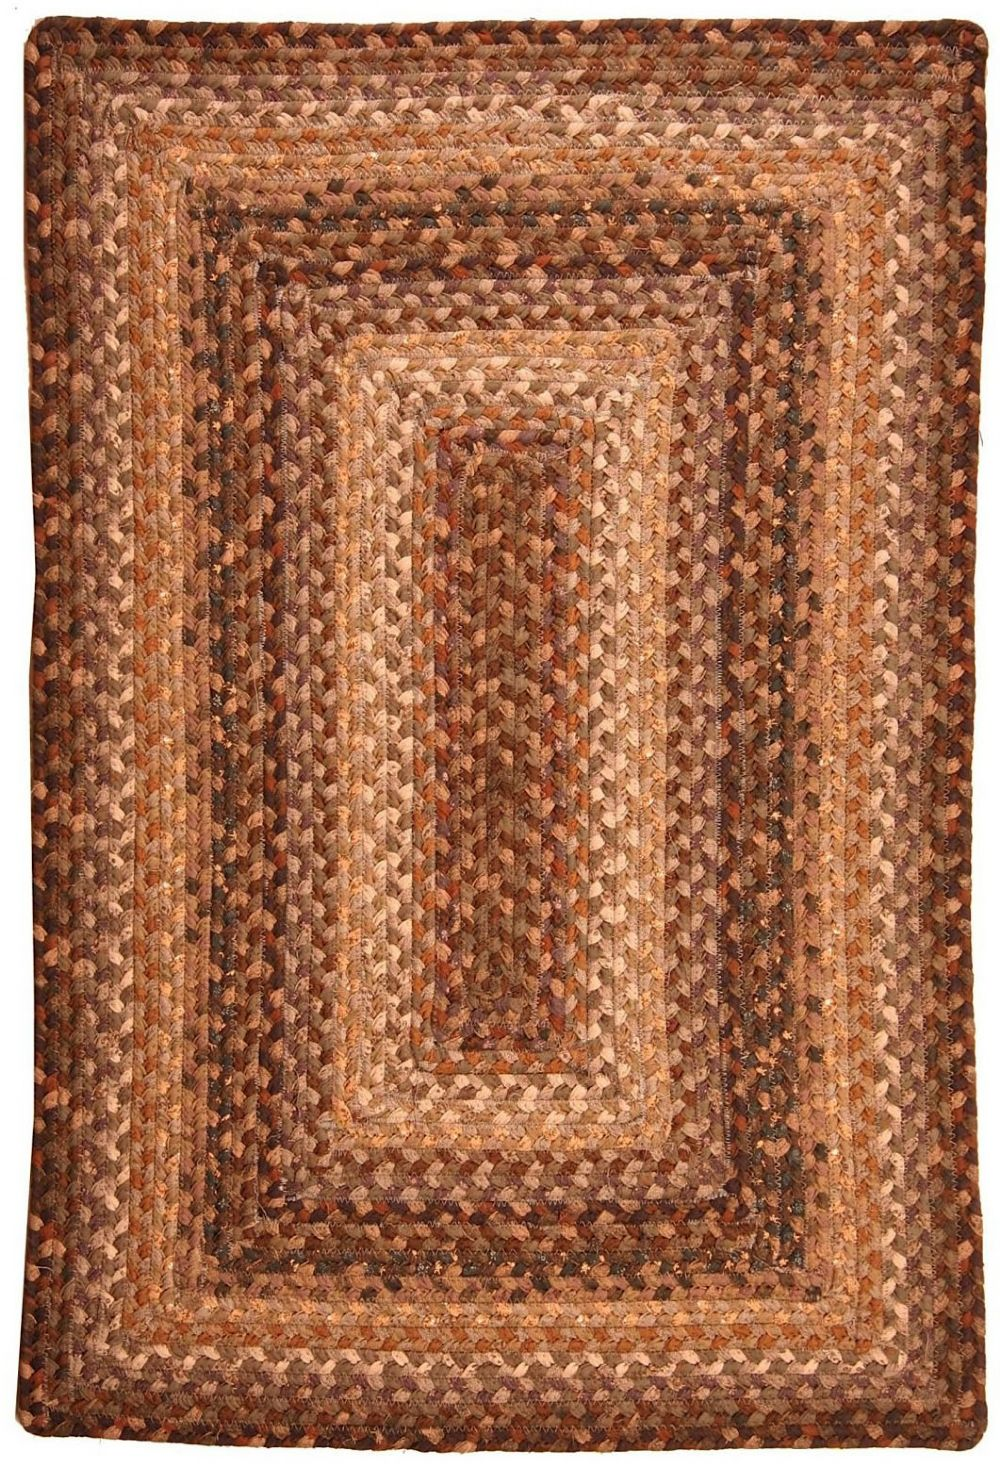 homespice decor sandalwood braided area rug collection